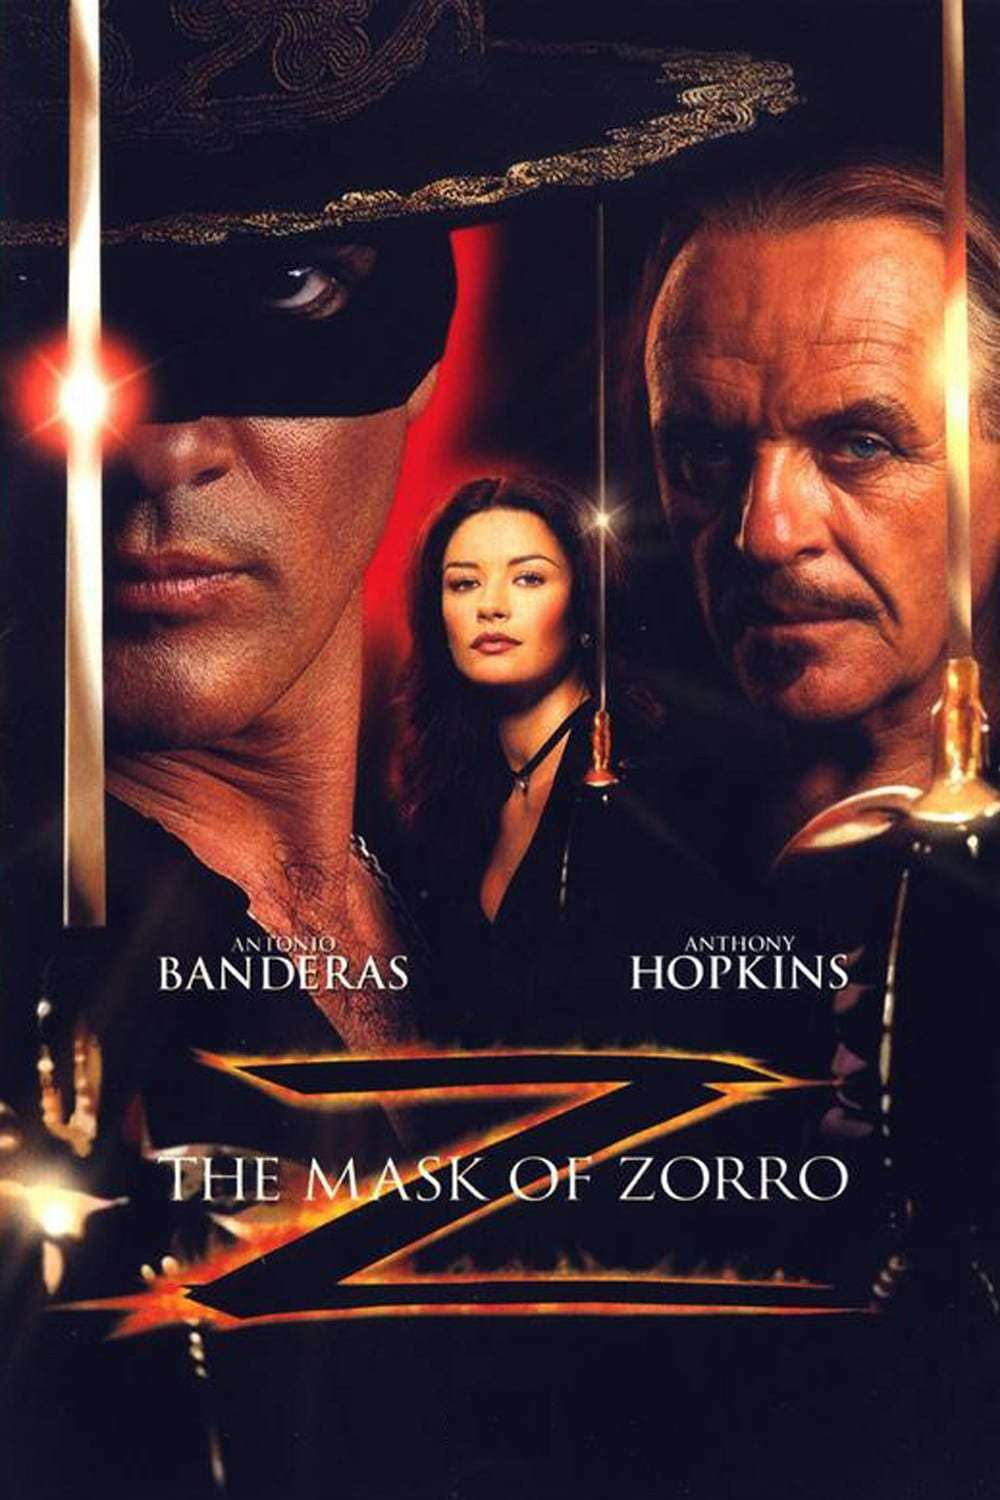 Le Masque De Zorro : masque, zorro, Zorro,, Story, About, Legendary, Warrior, After, Betrayal, Family, Exile,, During, Crisis, Returns, Shows